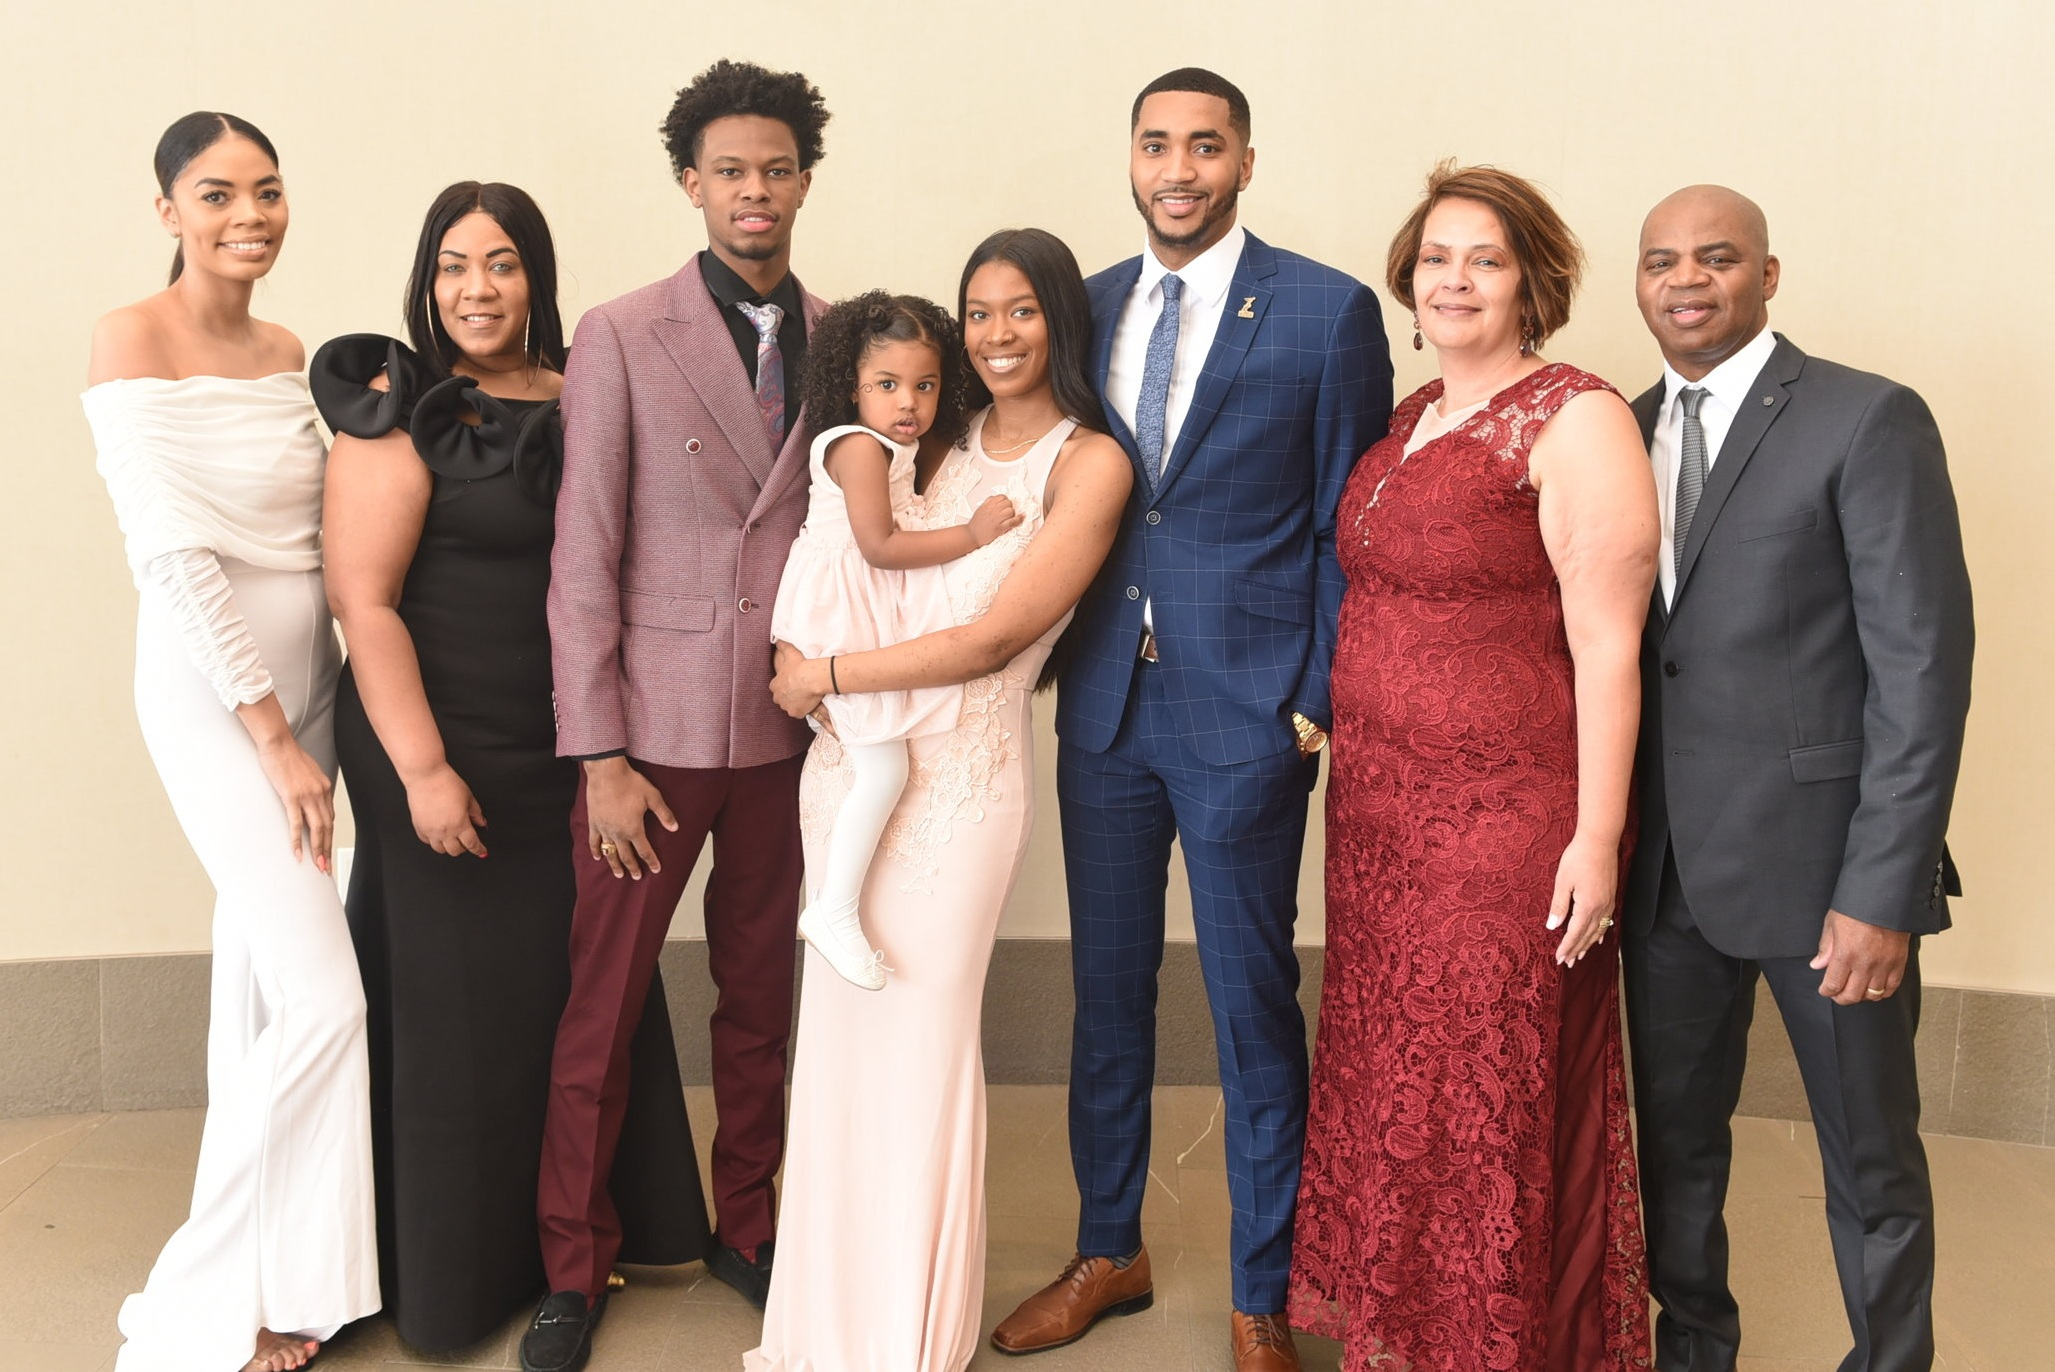 Shaquille Smith and his partner Janessa Tynes with their daughter Zaila surrounded by family members Jasmine Smith (l), Venessa Simmonds and his parents Christine & Gerald Smith